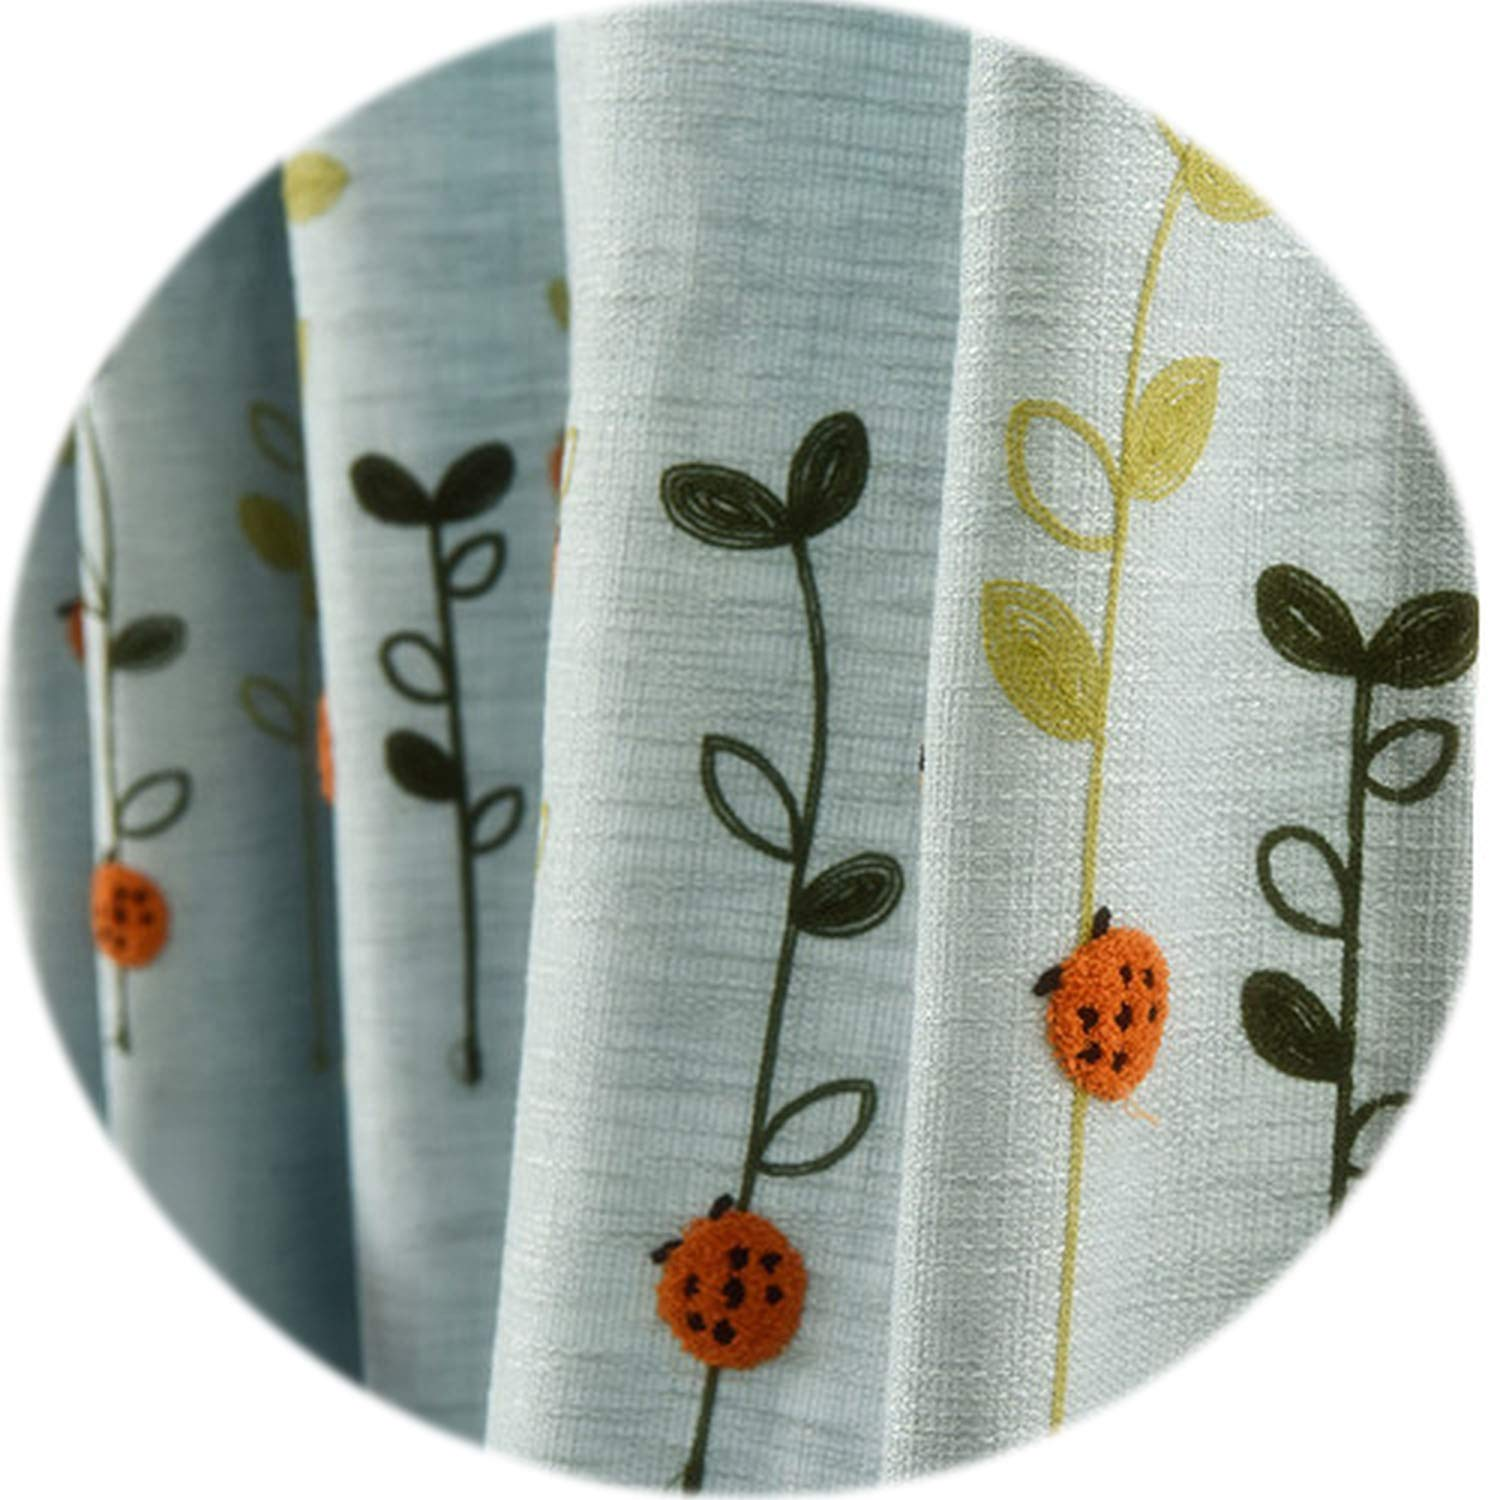 No Buy No Bye Embroidered Curtains Kid Room Girl Bedroom Blue Beige Curtains Drape Floral Design Short Window for Bedroom Kid Curtain,Blue Thick,W400cm L250cm,1 Rod Pocket